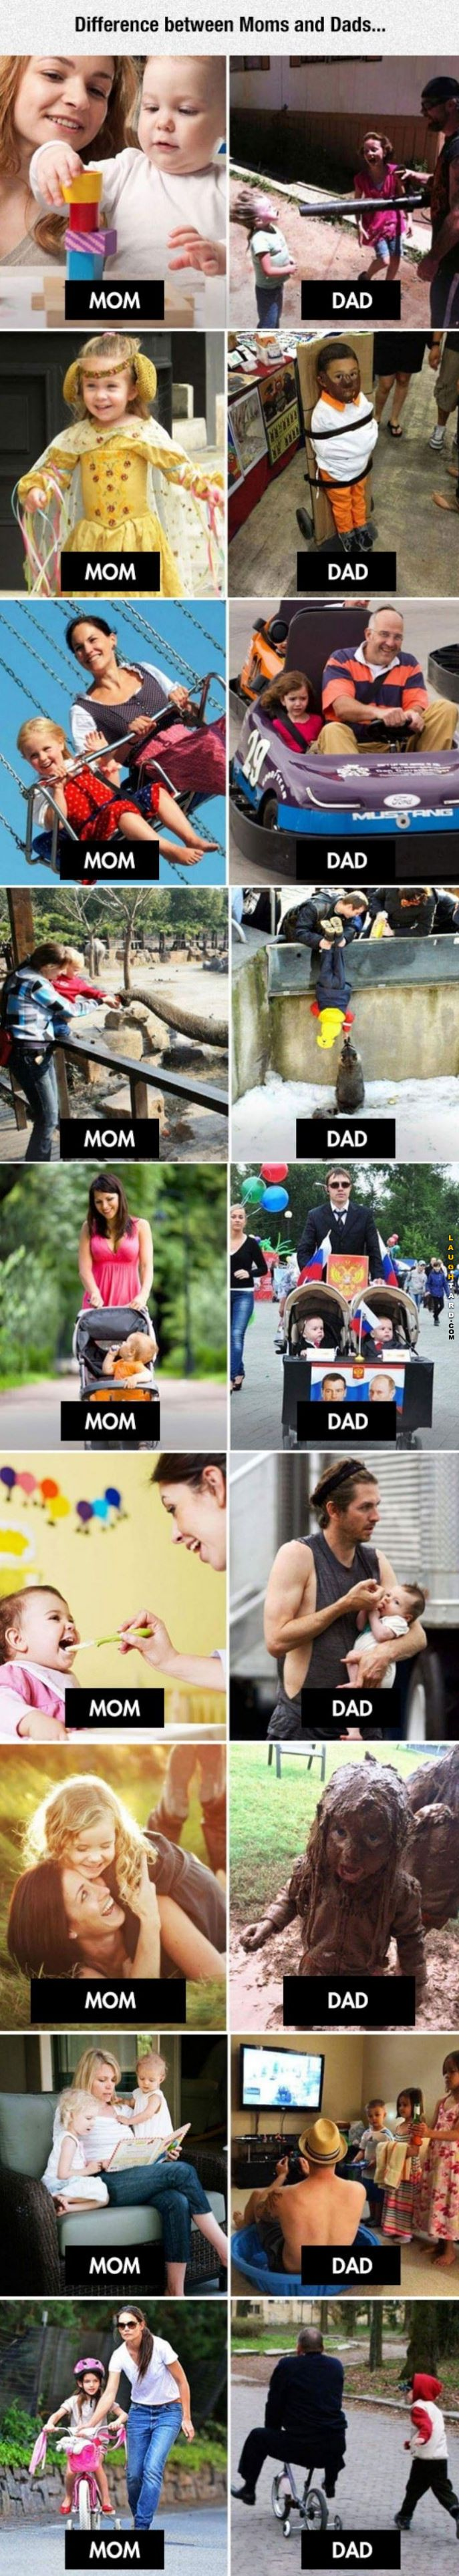 Difference between Mom and Dad